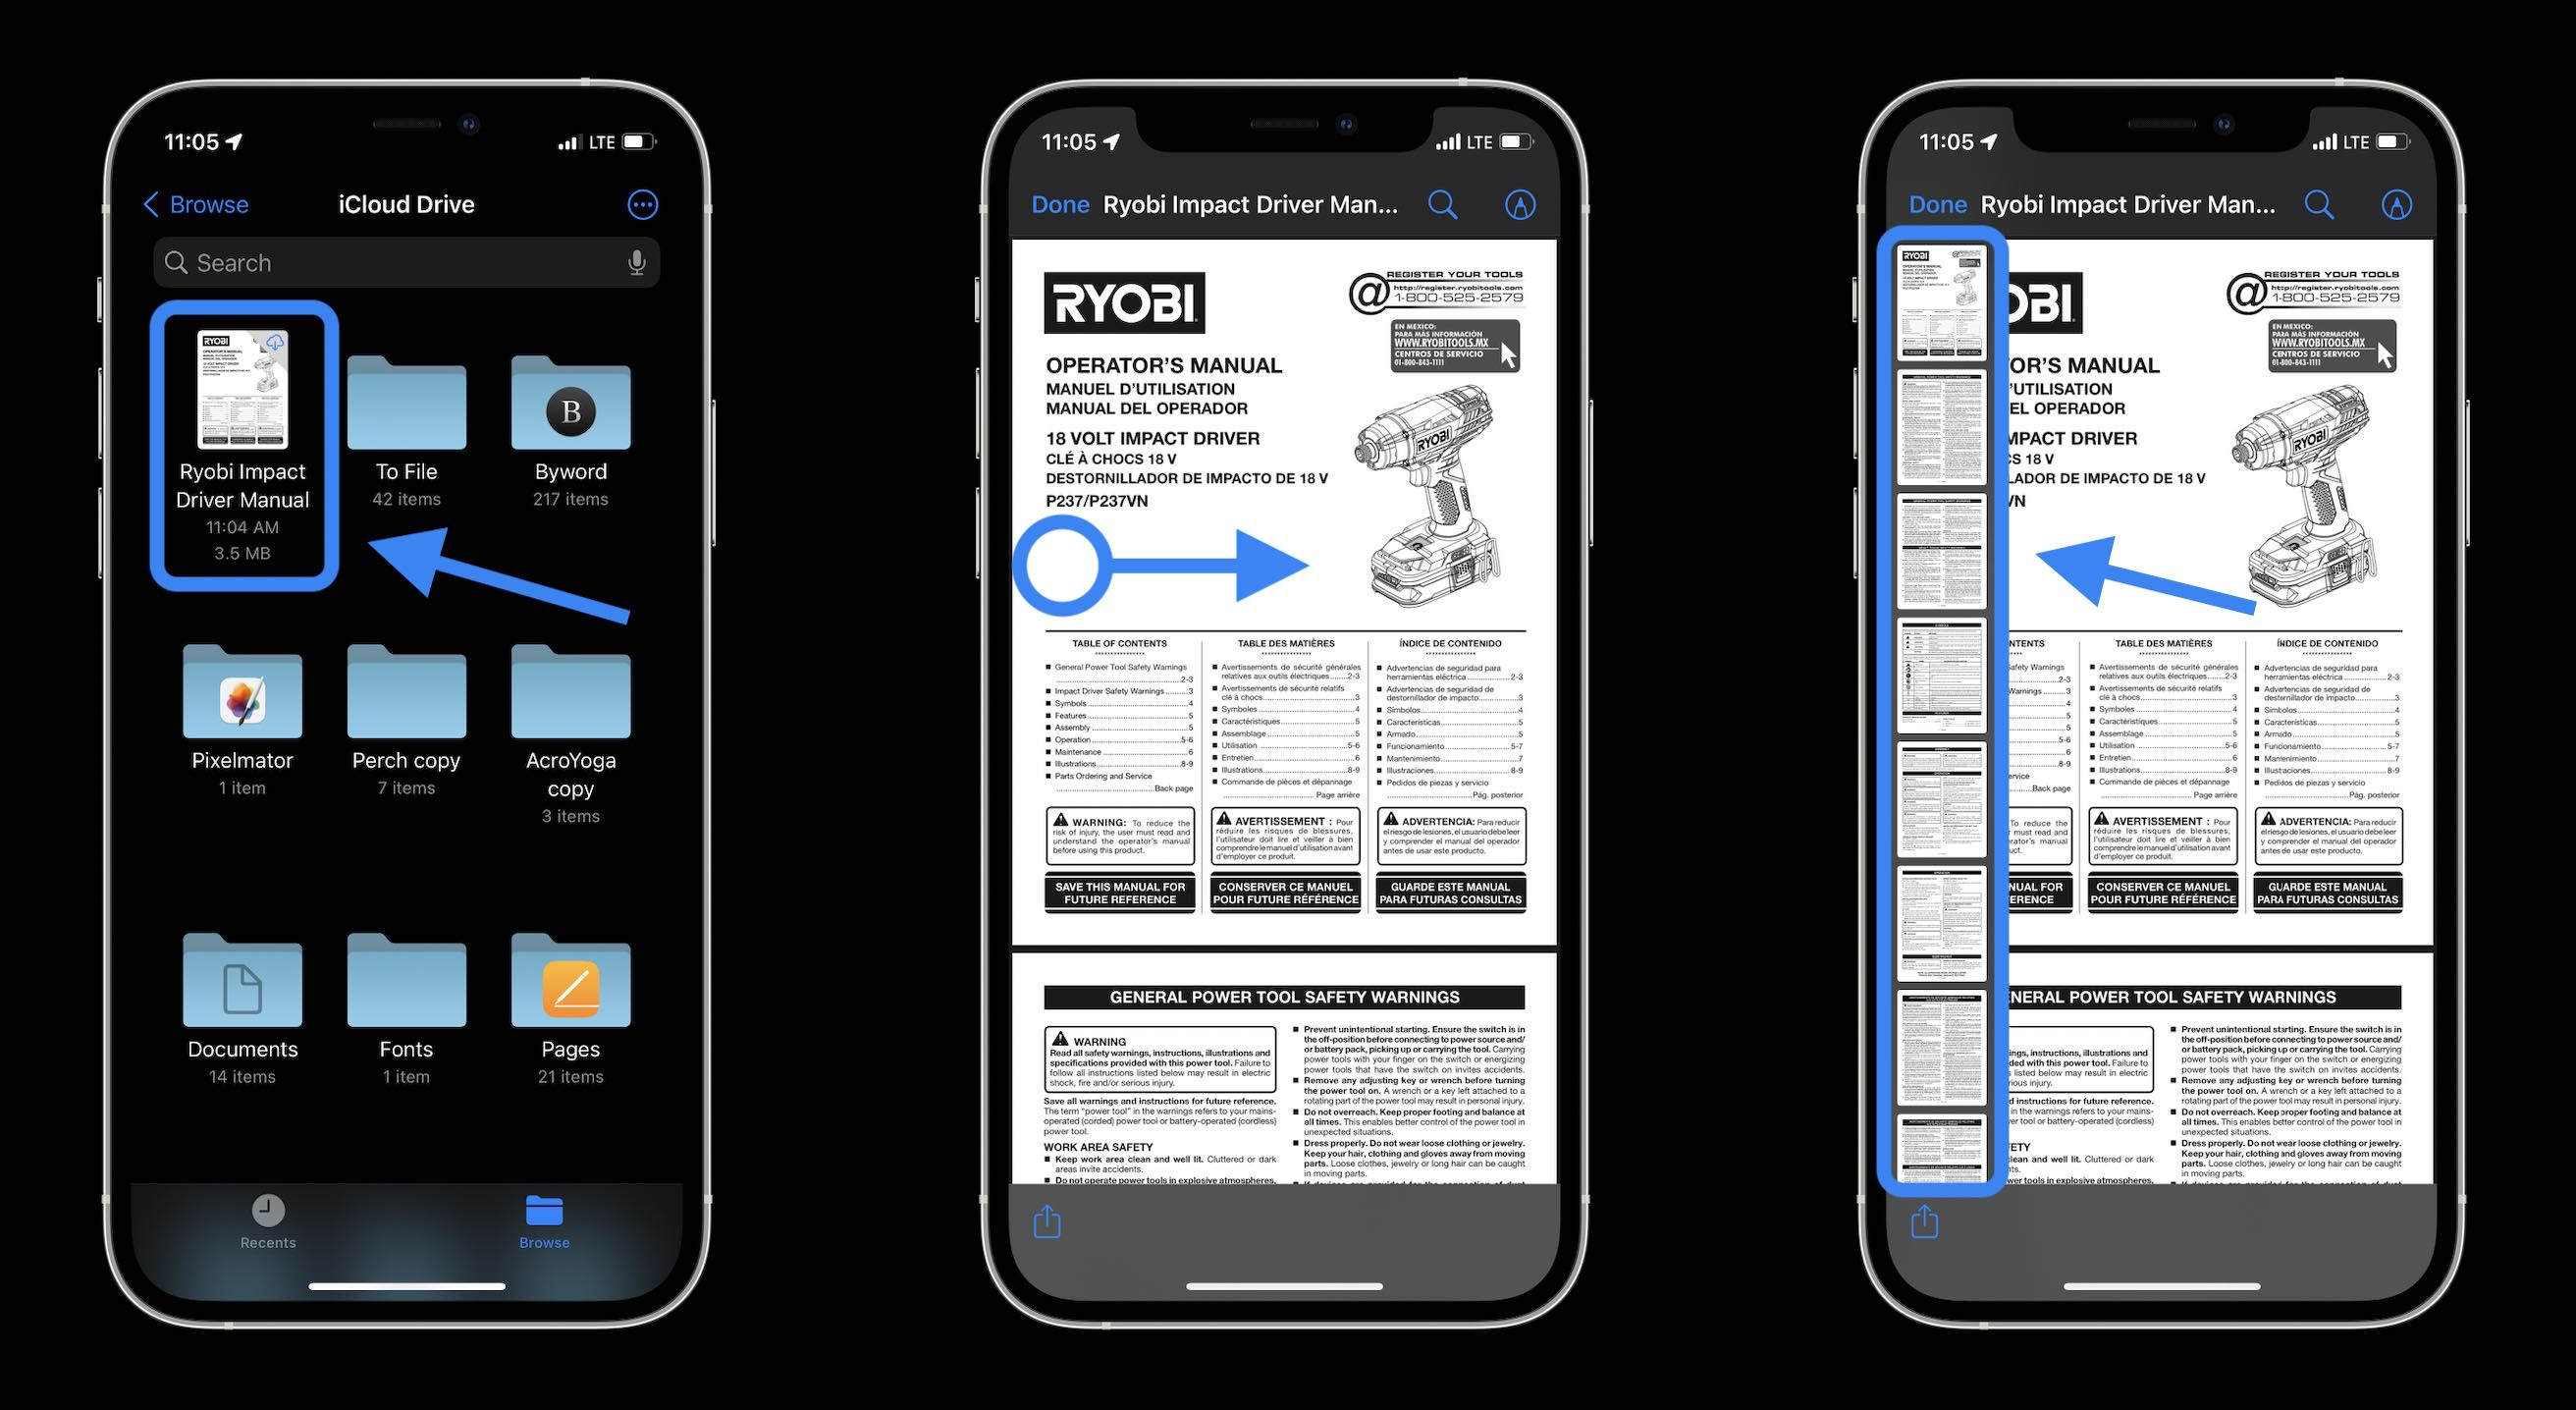 How to edit PDFs on iPhone and iPad in iOS 15 - walkthrough 1